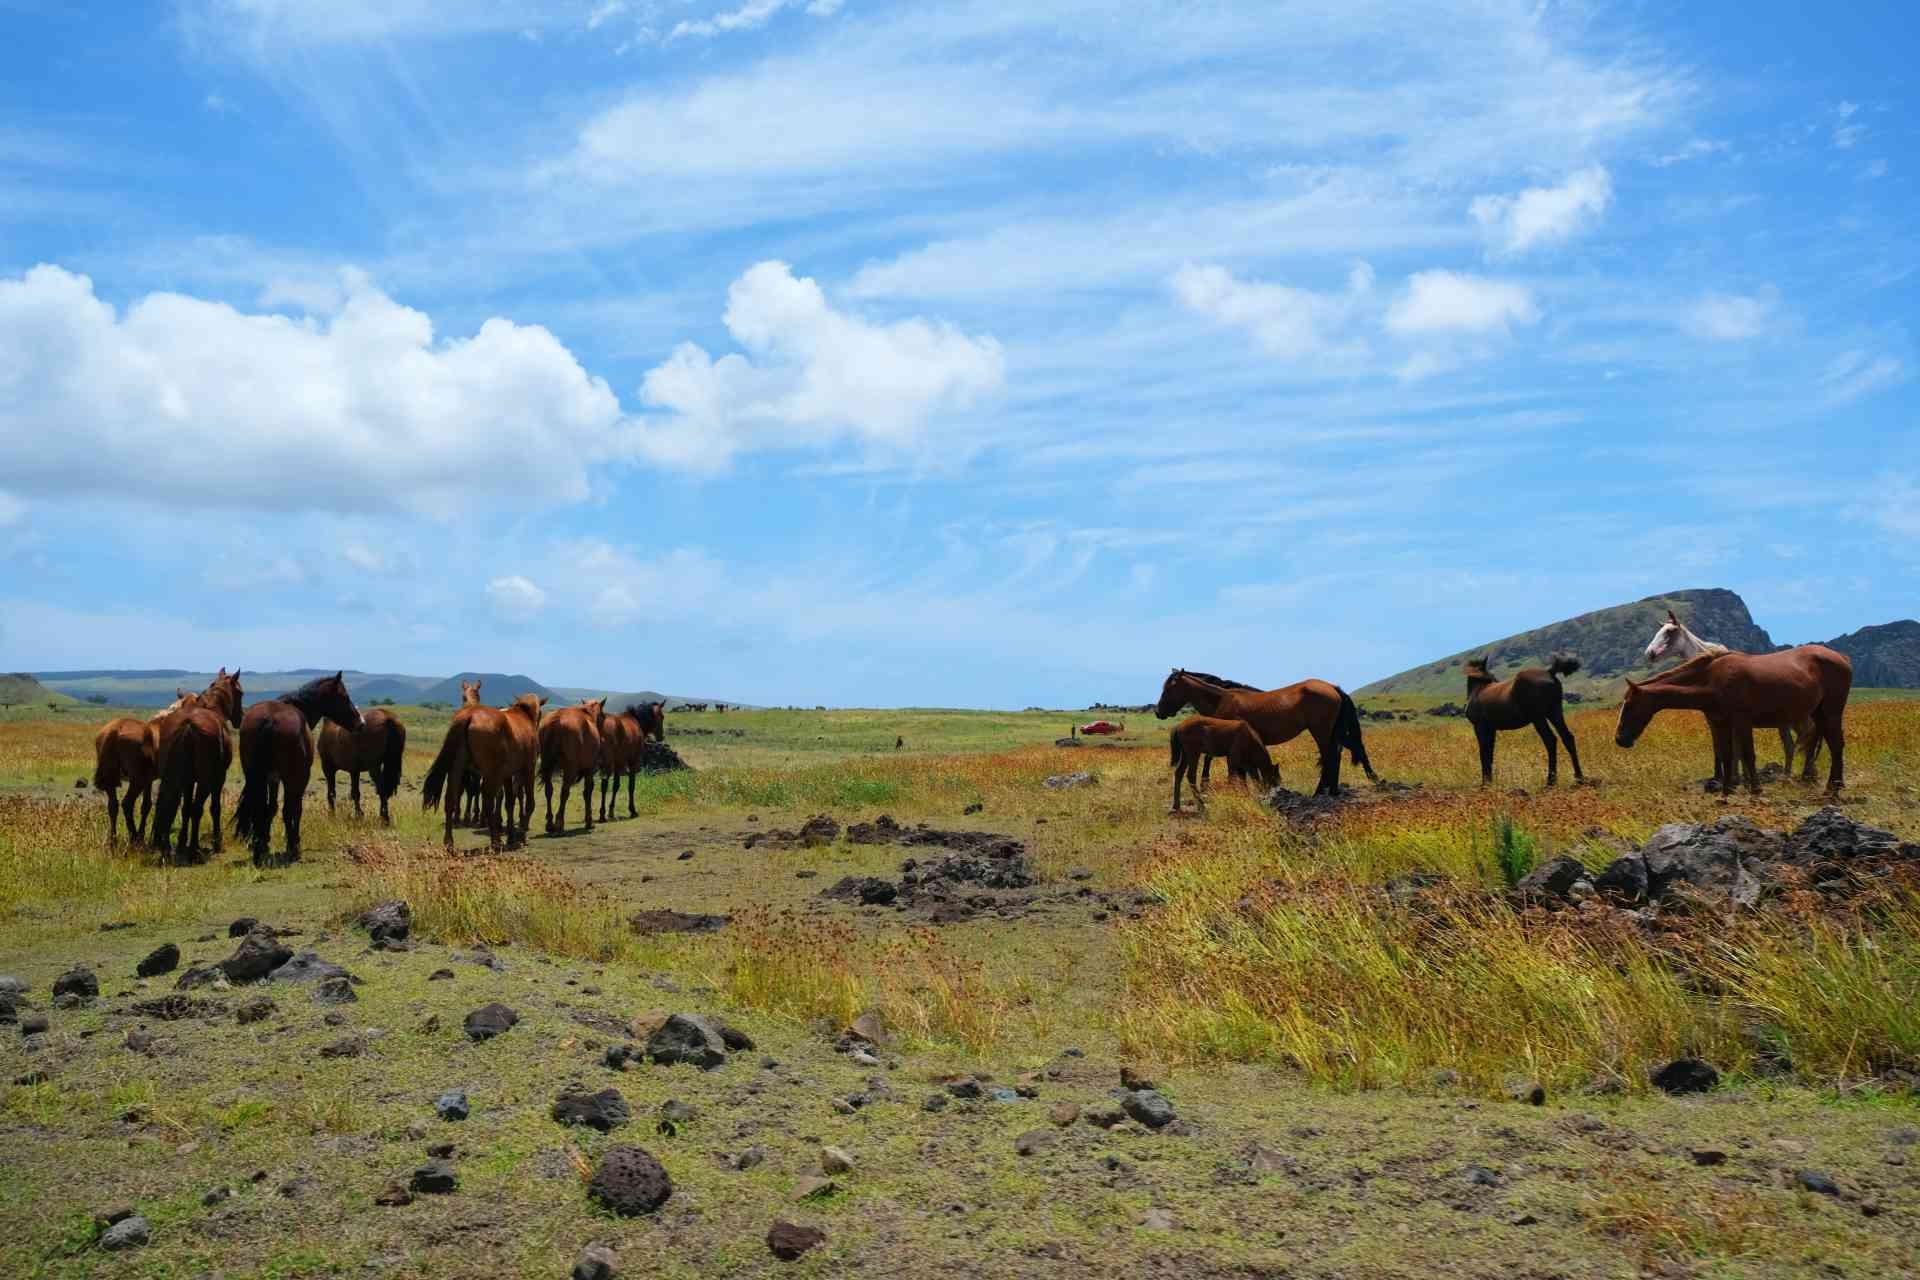 Horses on Easter Island, Chile by Nathalie Marquis/Unsplash